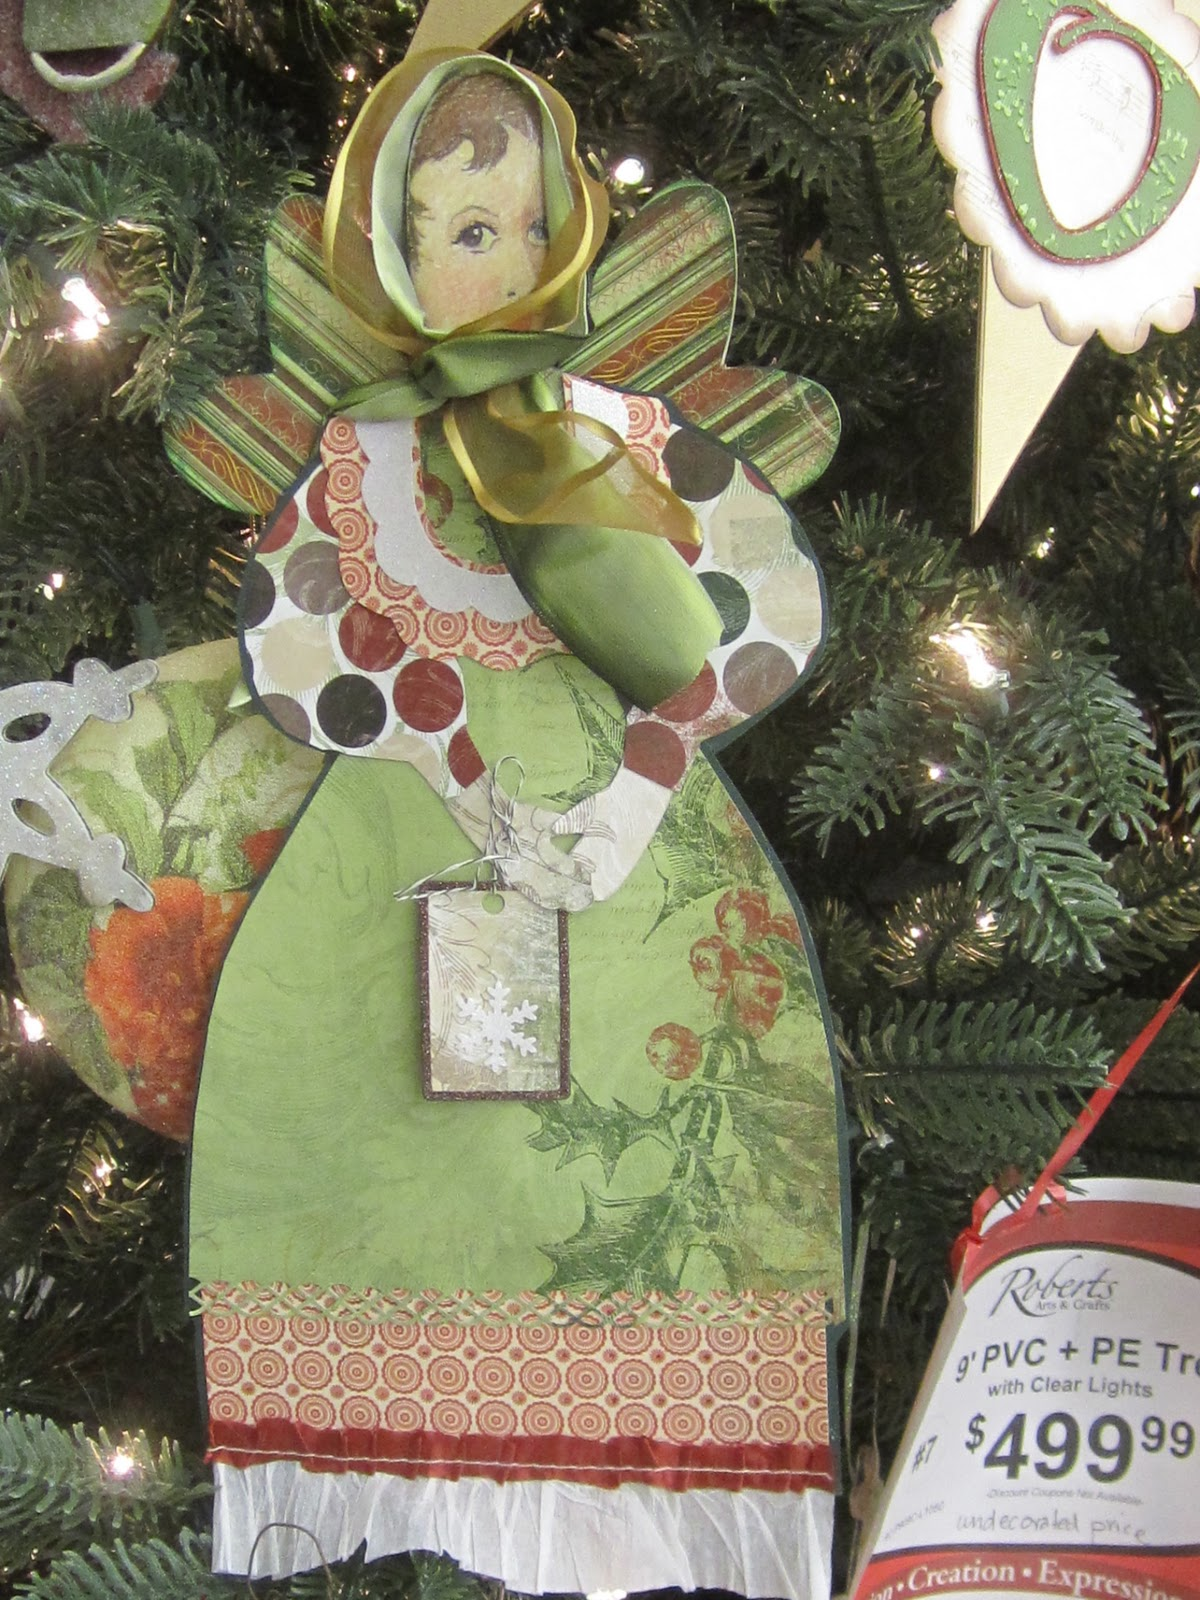 How to delete scrapbook photos google+ - I Made The Paper Doll By Covering A Wooden Spoon With An Image I Drew And Color Copied And Decoupaged The Clothing Is Scrapbook Paper Which Is Backed With